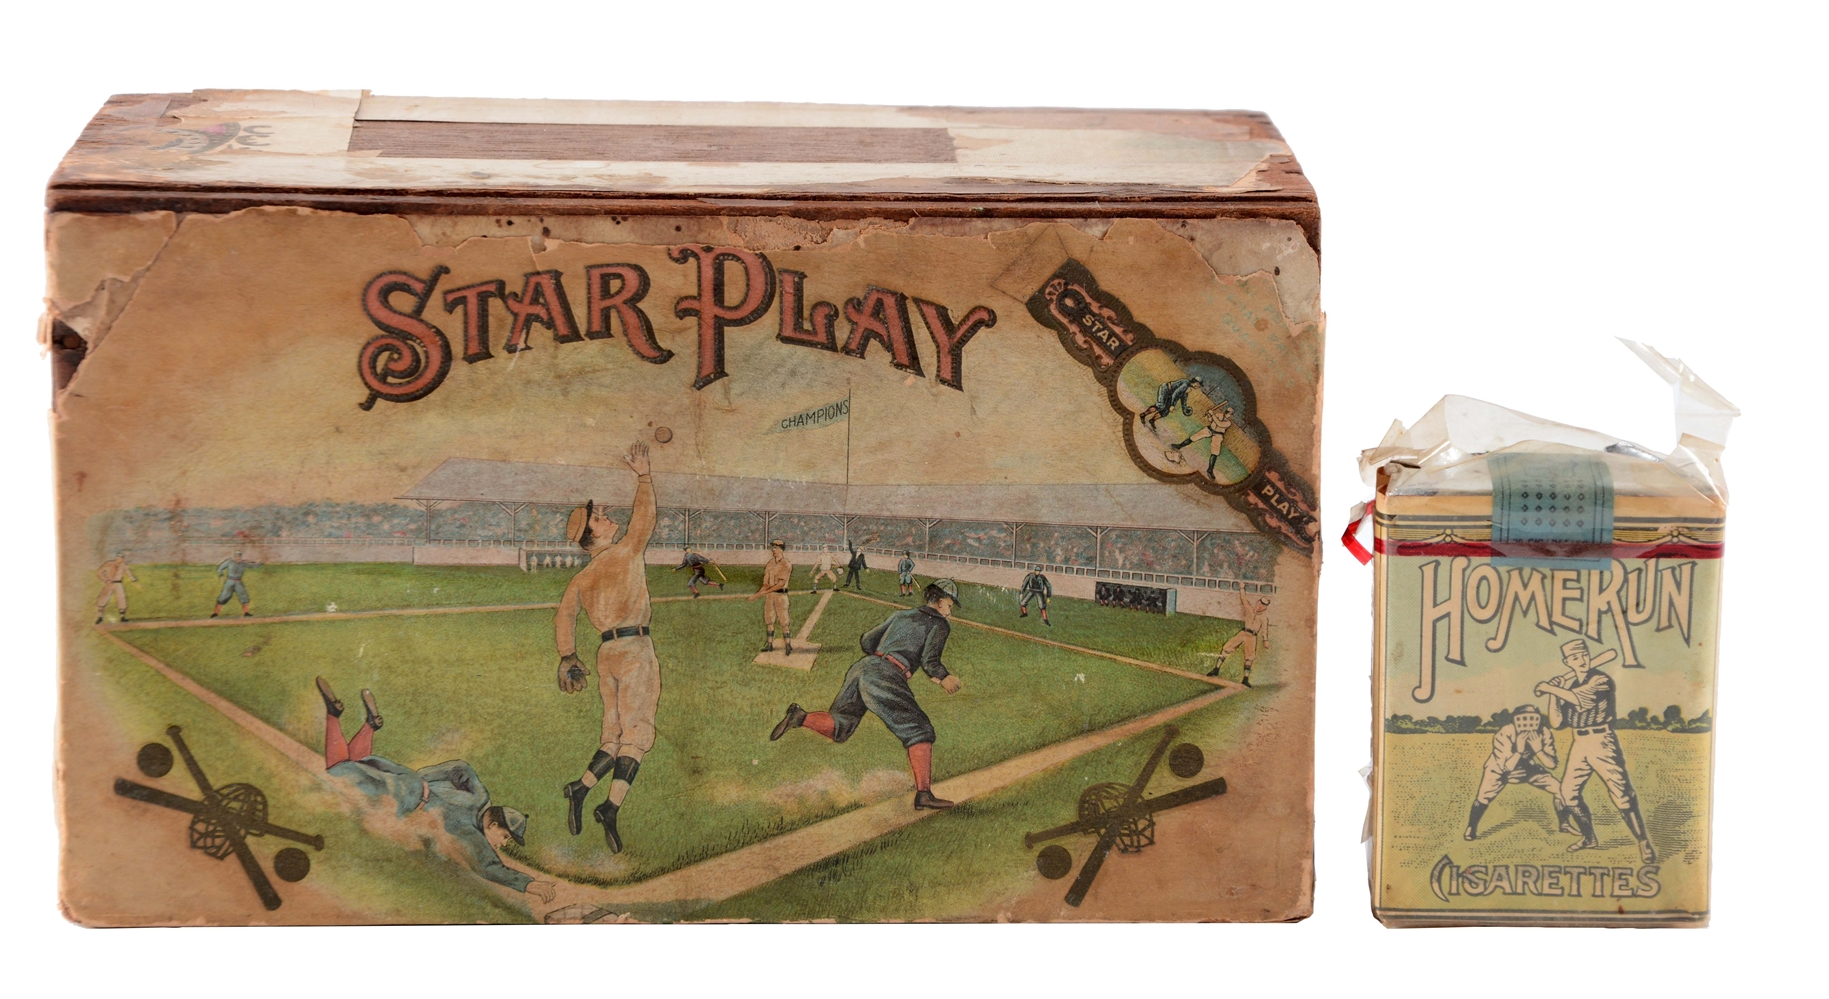 Lot of 2: Star Play Cigar Box with Home Run Cigarette Pack.